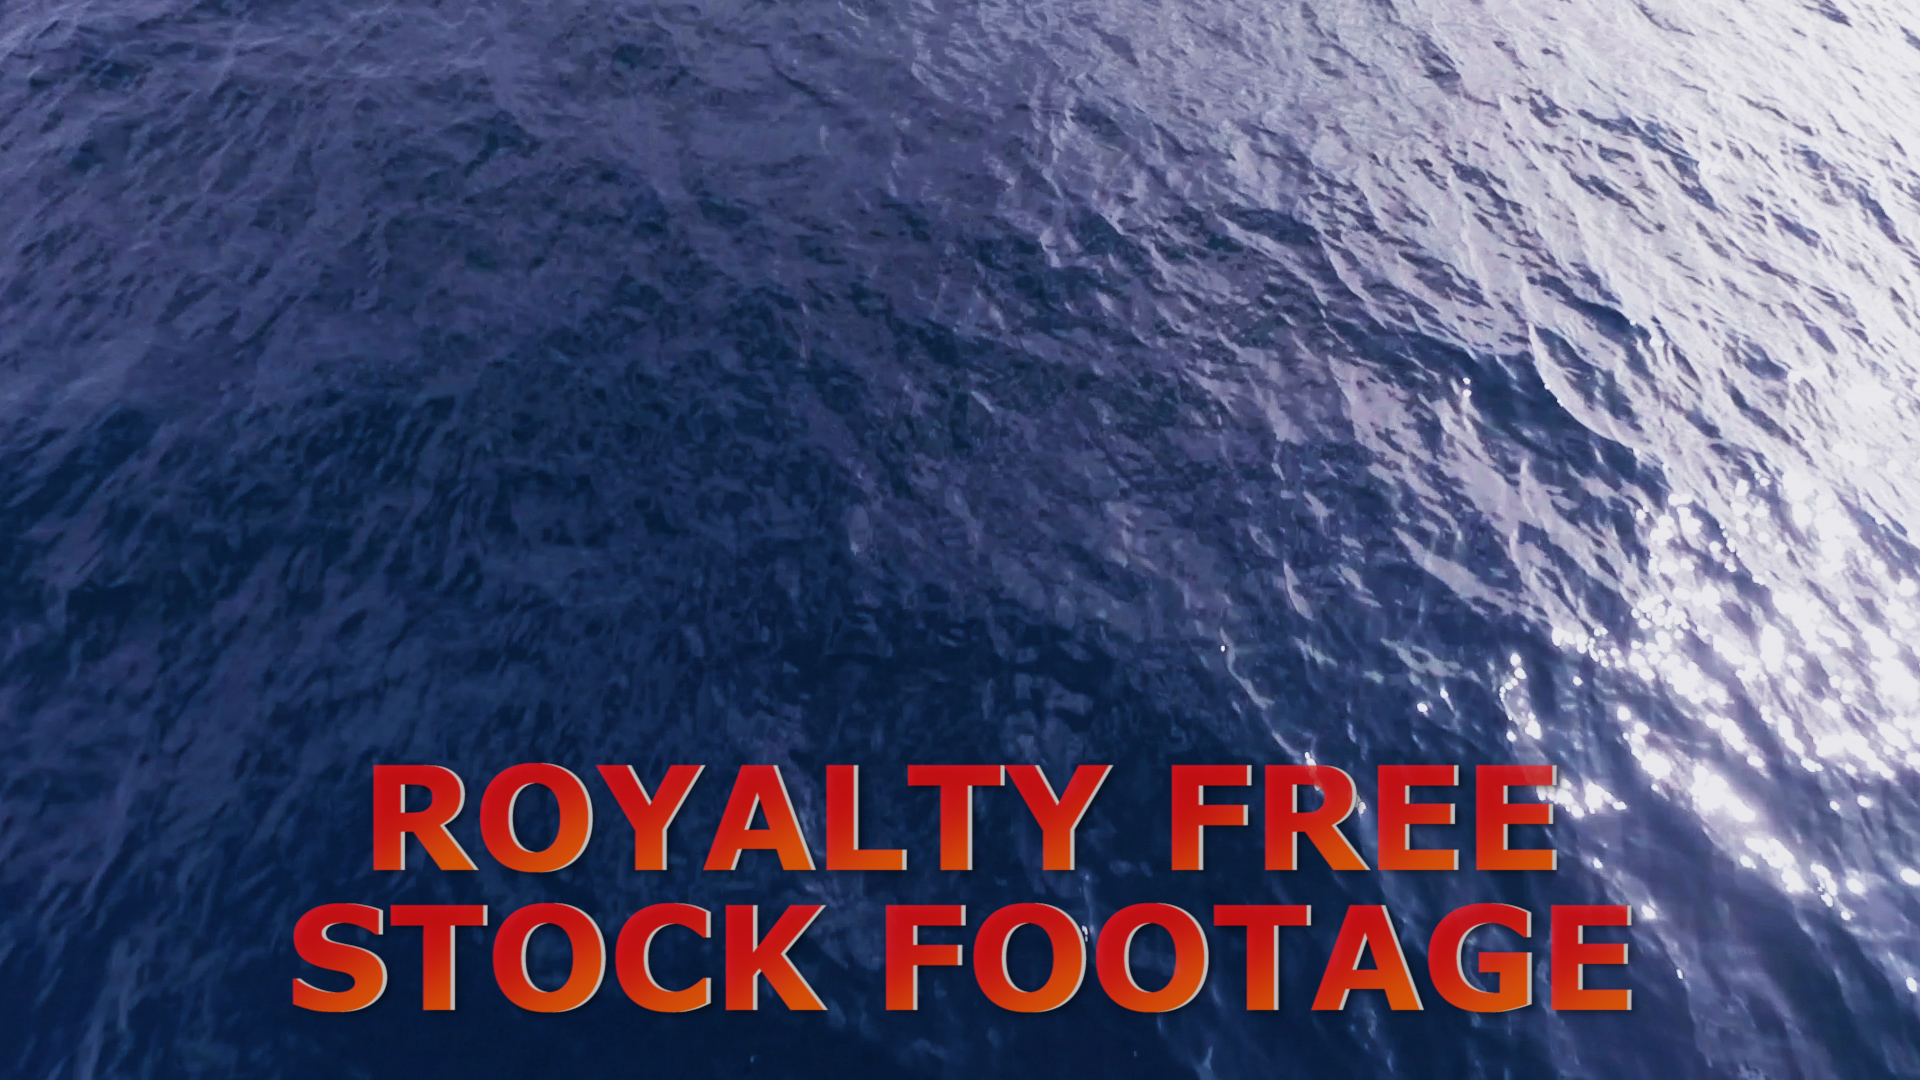 Hd Christbaumschmuck Royalty Free Video And Stock Footage Flying Over Water Motion Backgrounds Royalty Free Stock